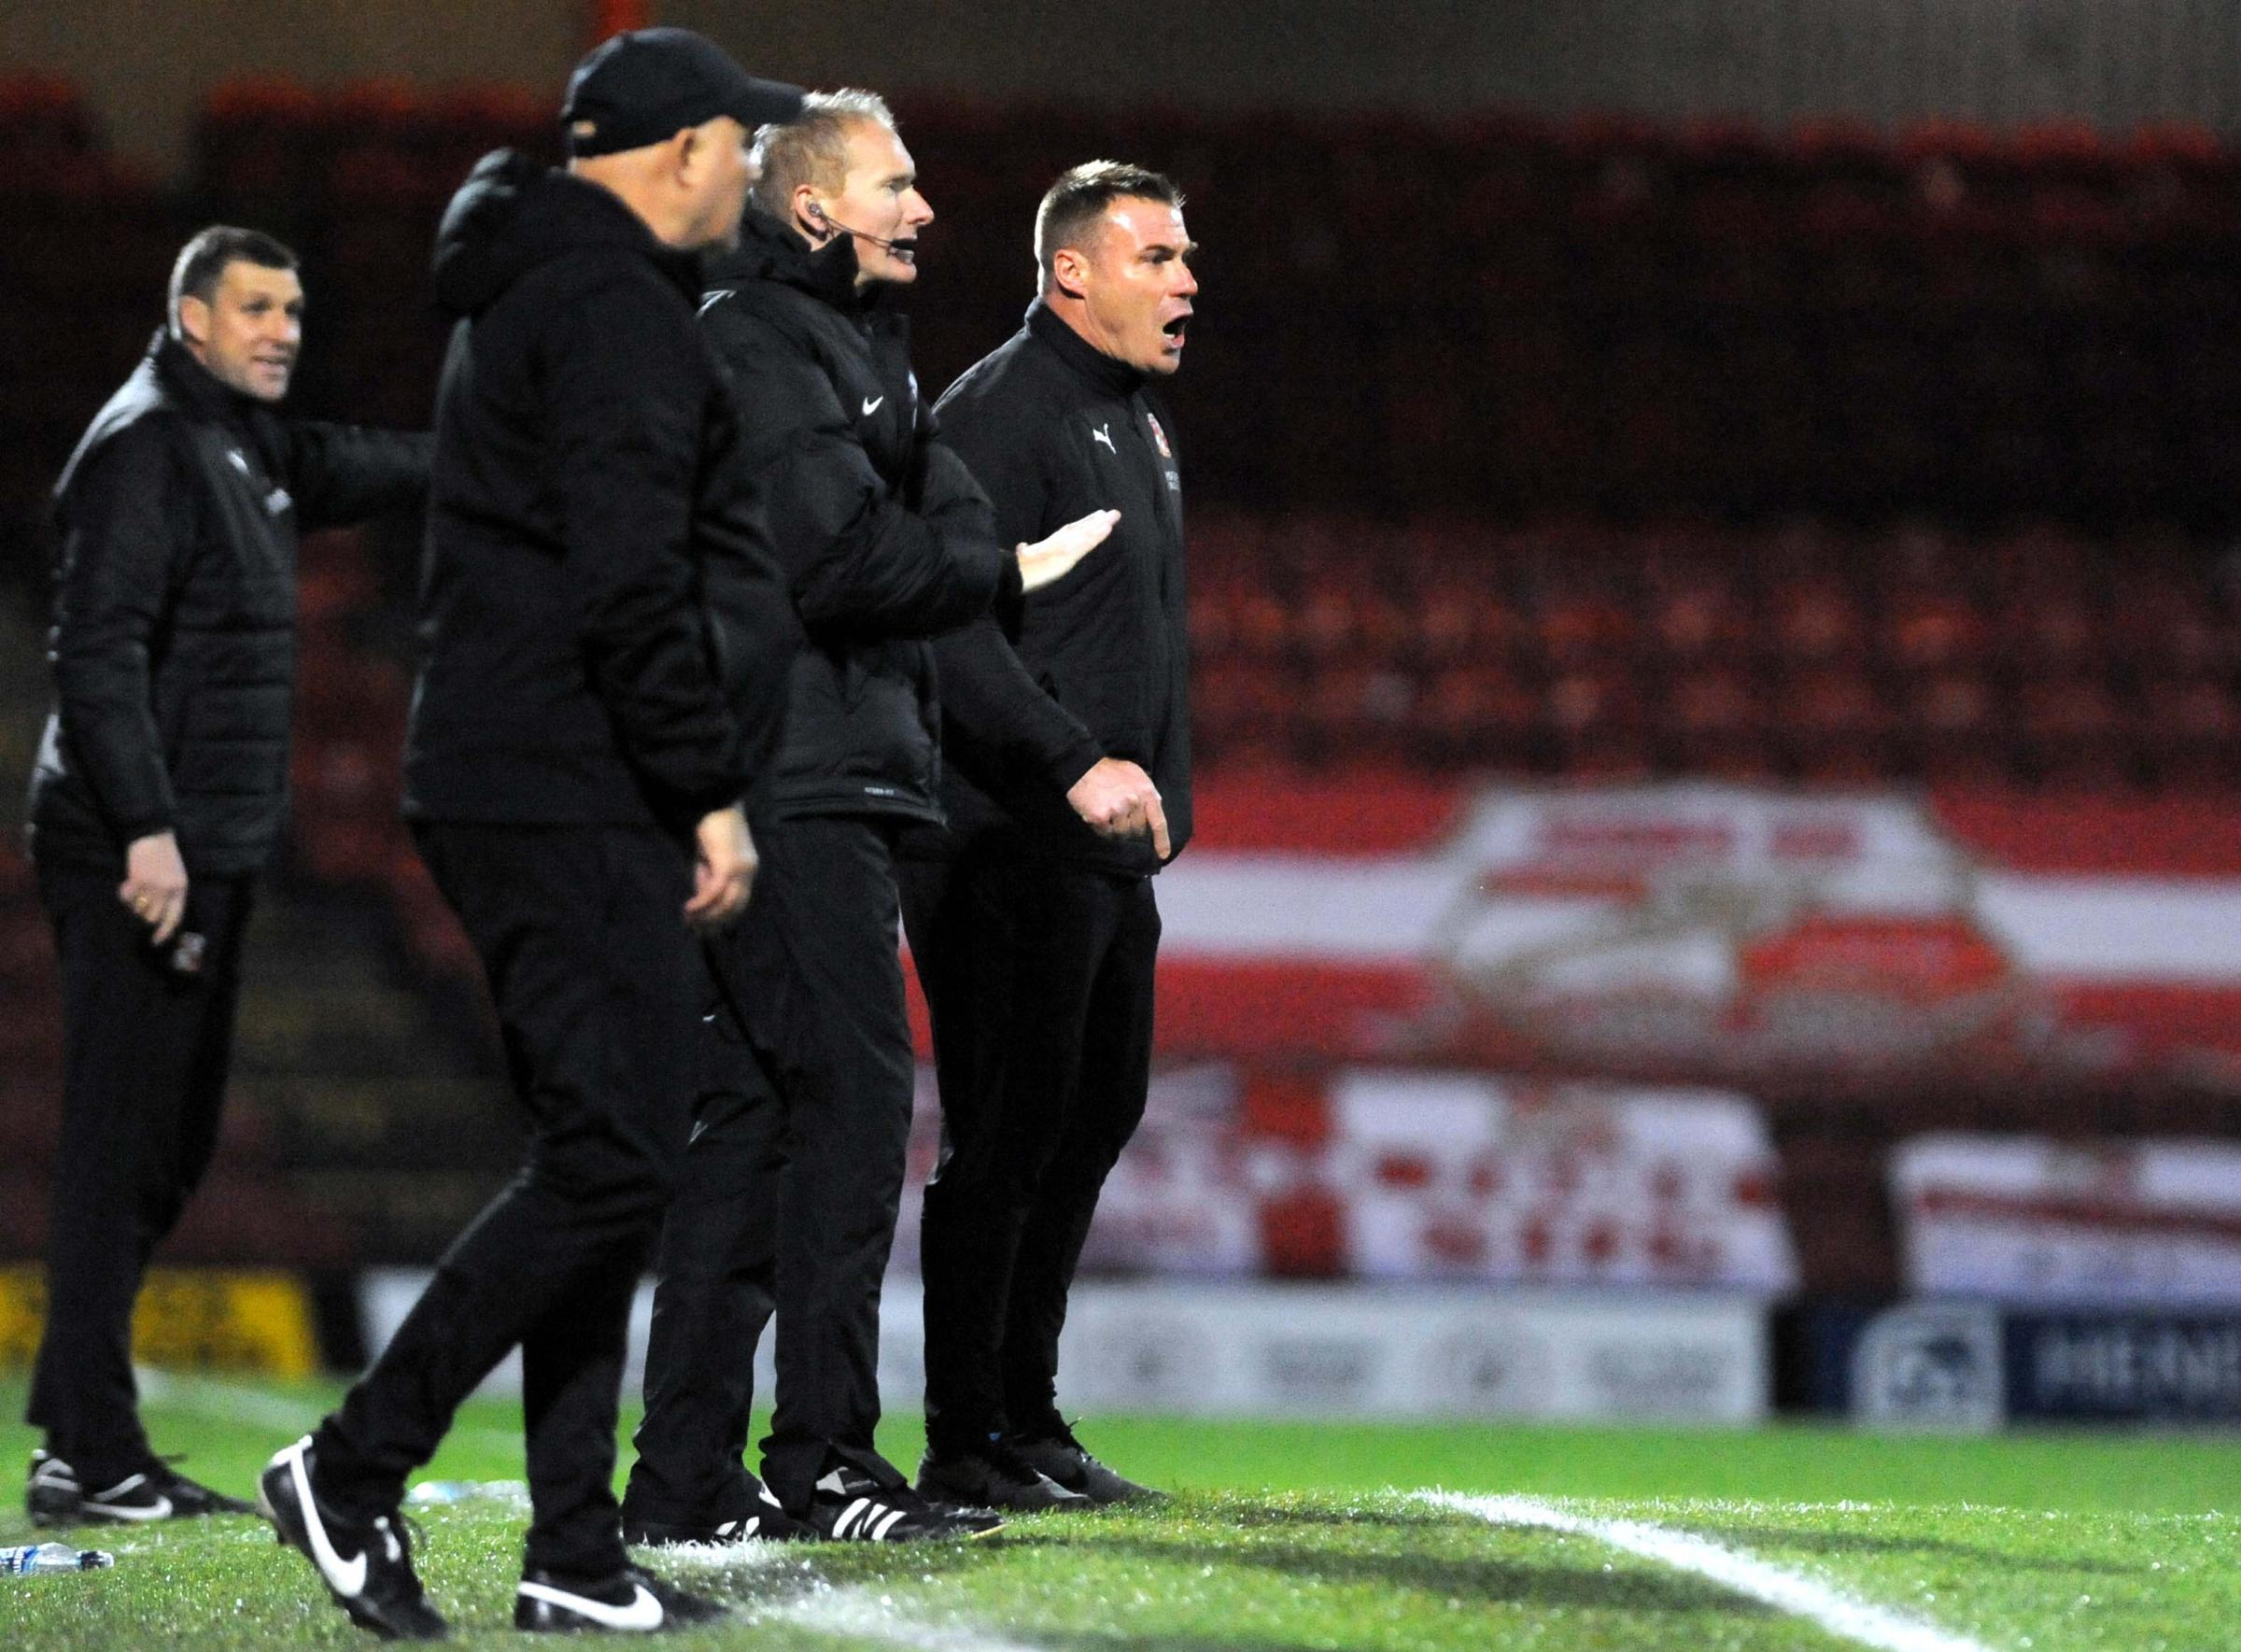 Swindon Town manager David Flitcroft shouts his instructions from the touchline at Grimsby